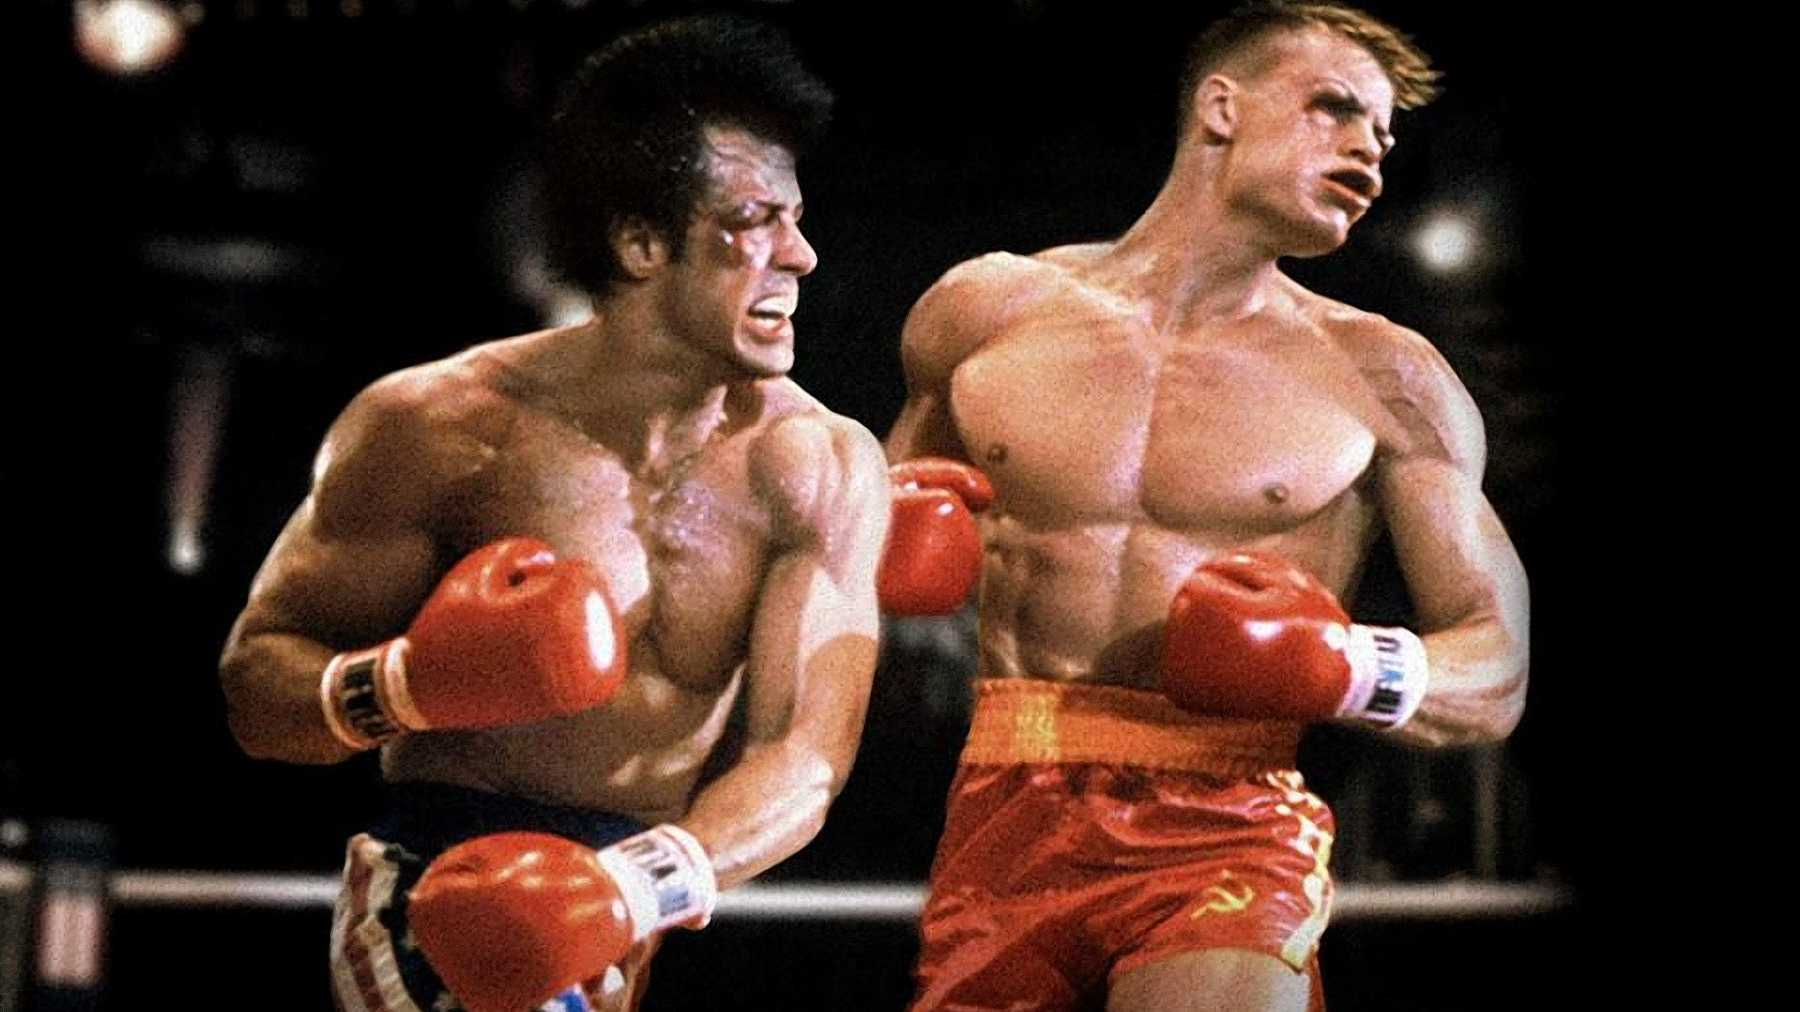 Rocky IV Ivan Drago Sylvester Stallone Rocky 4 boxing re-edit director's cut